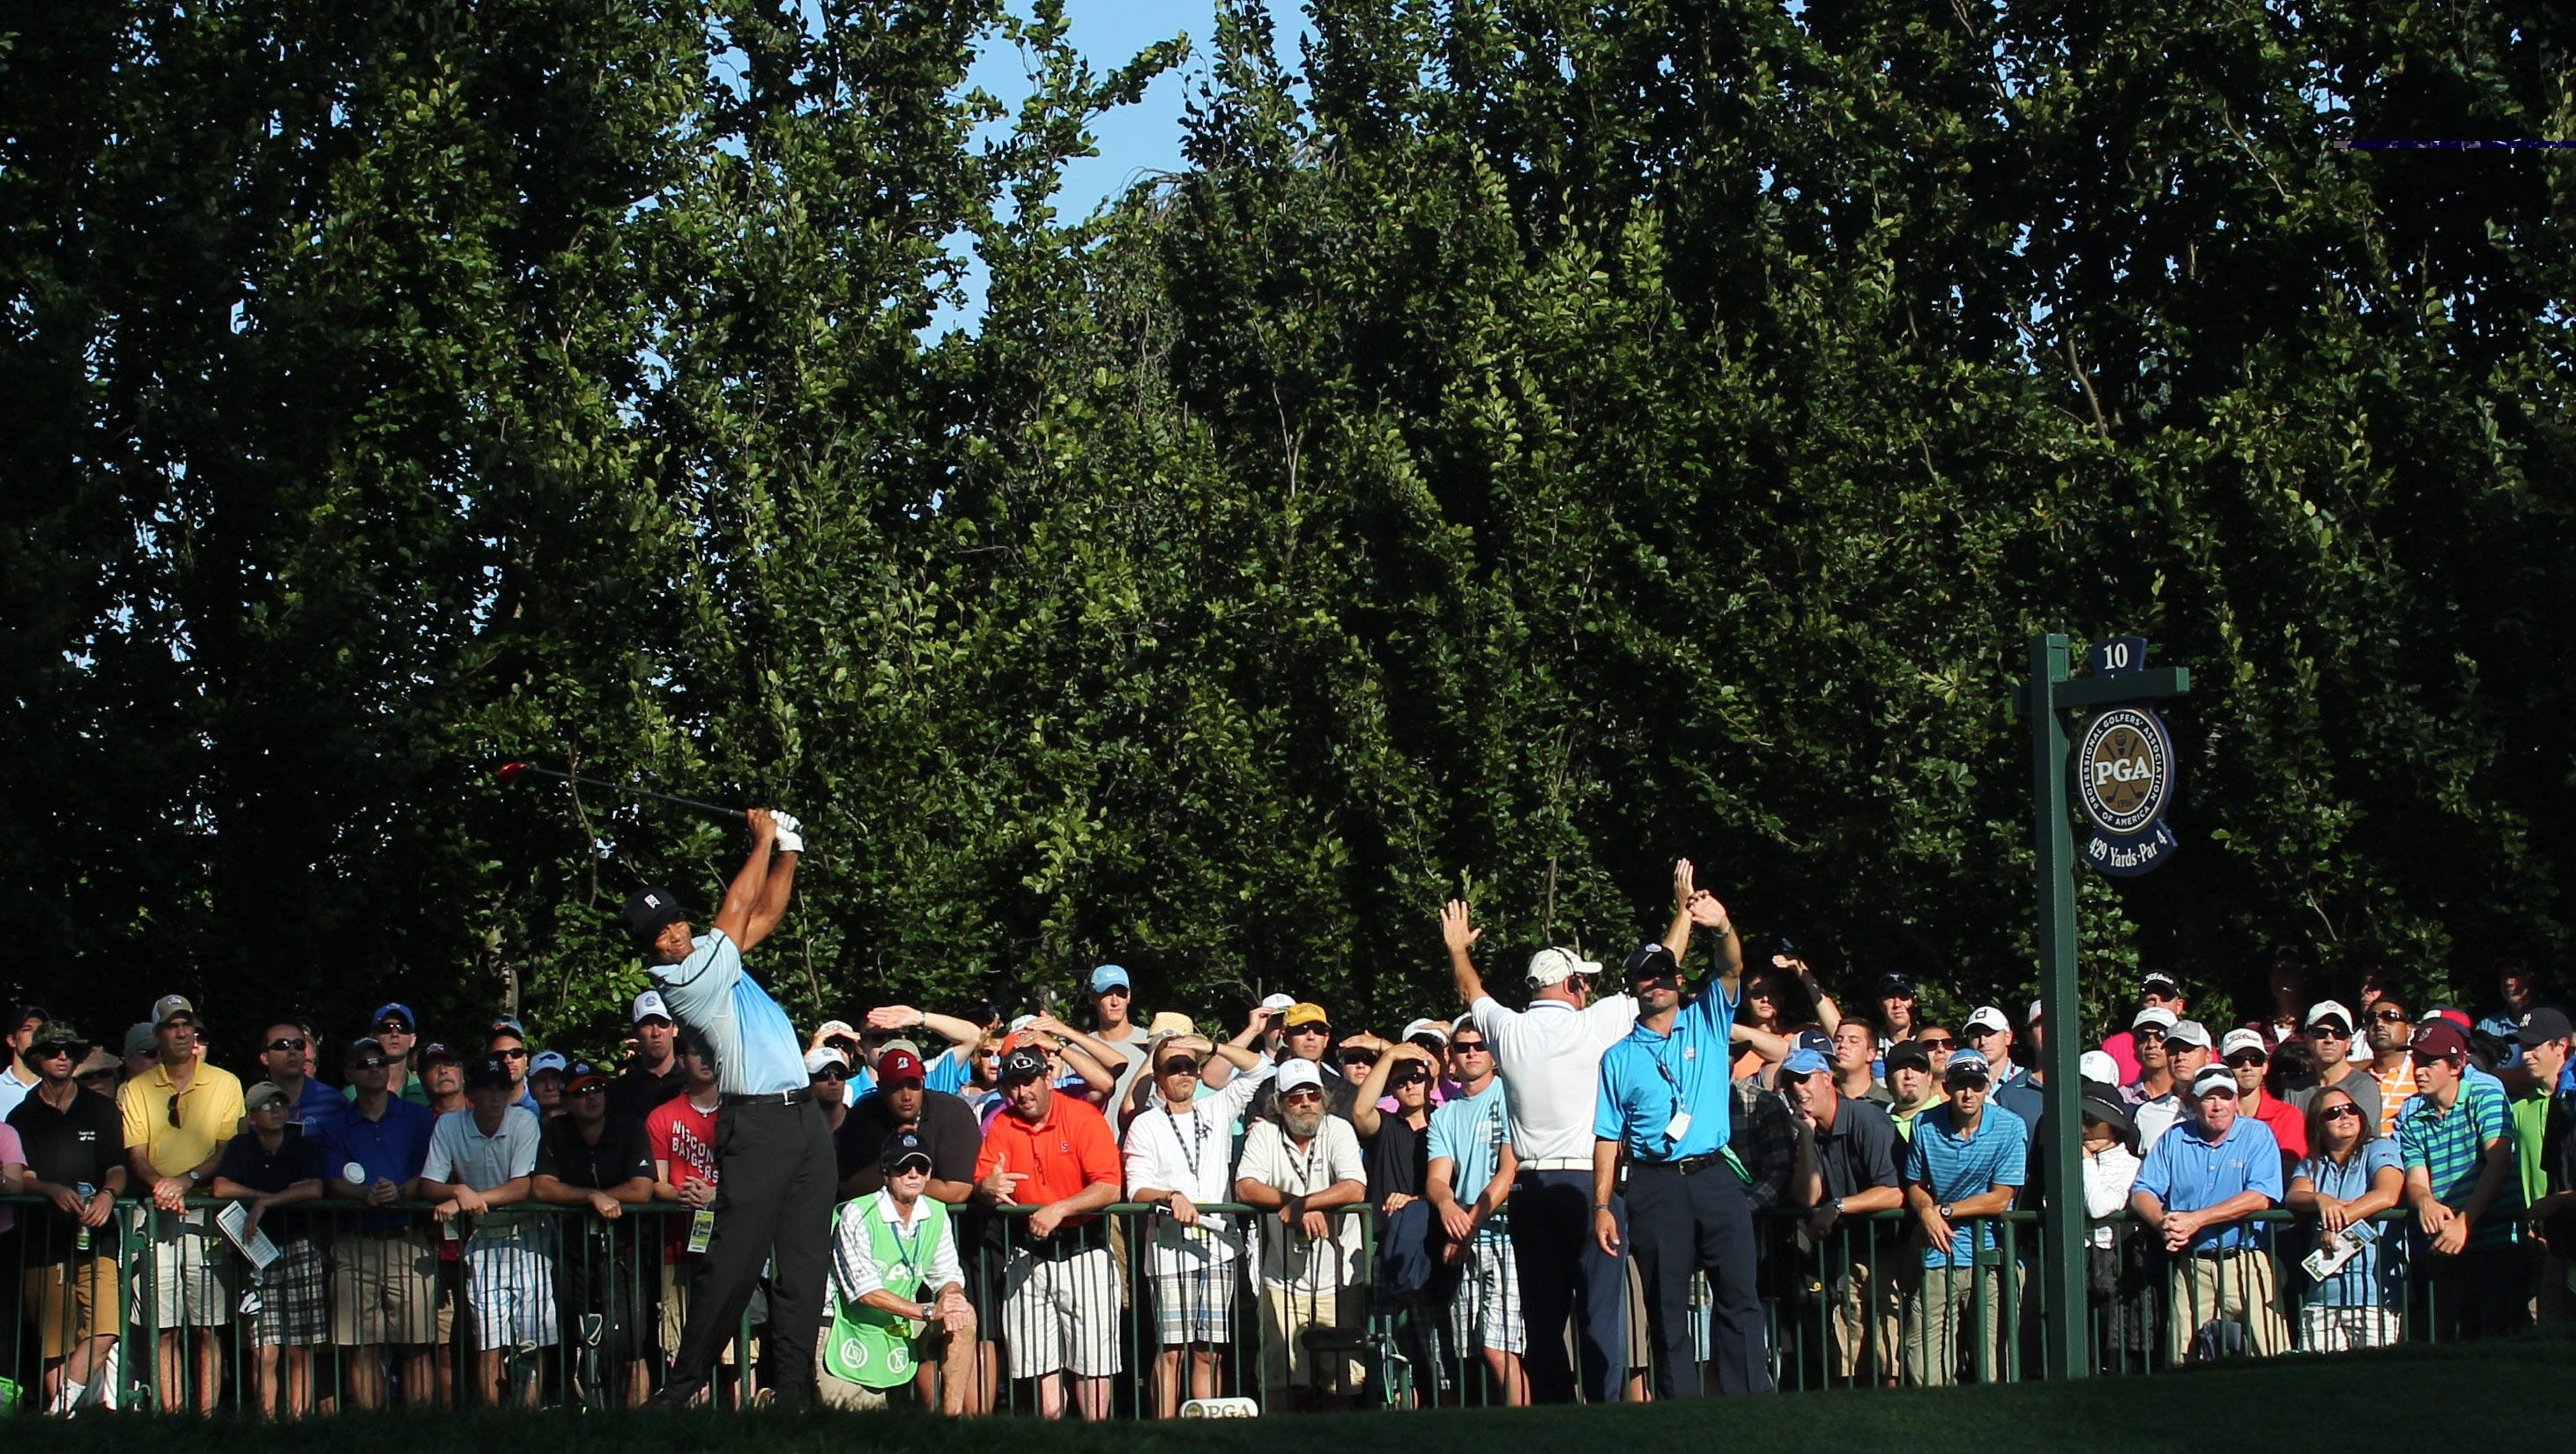 Tiger Woods tees off on the 10th hole during the first round of the 95th PGA Championship at Oak Hill Country Club.